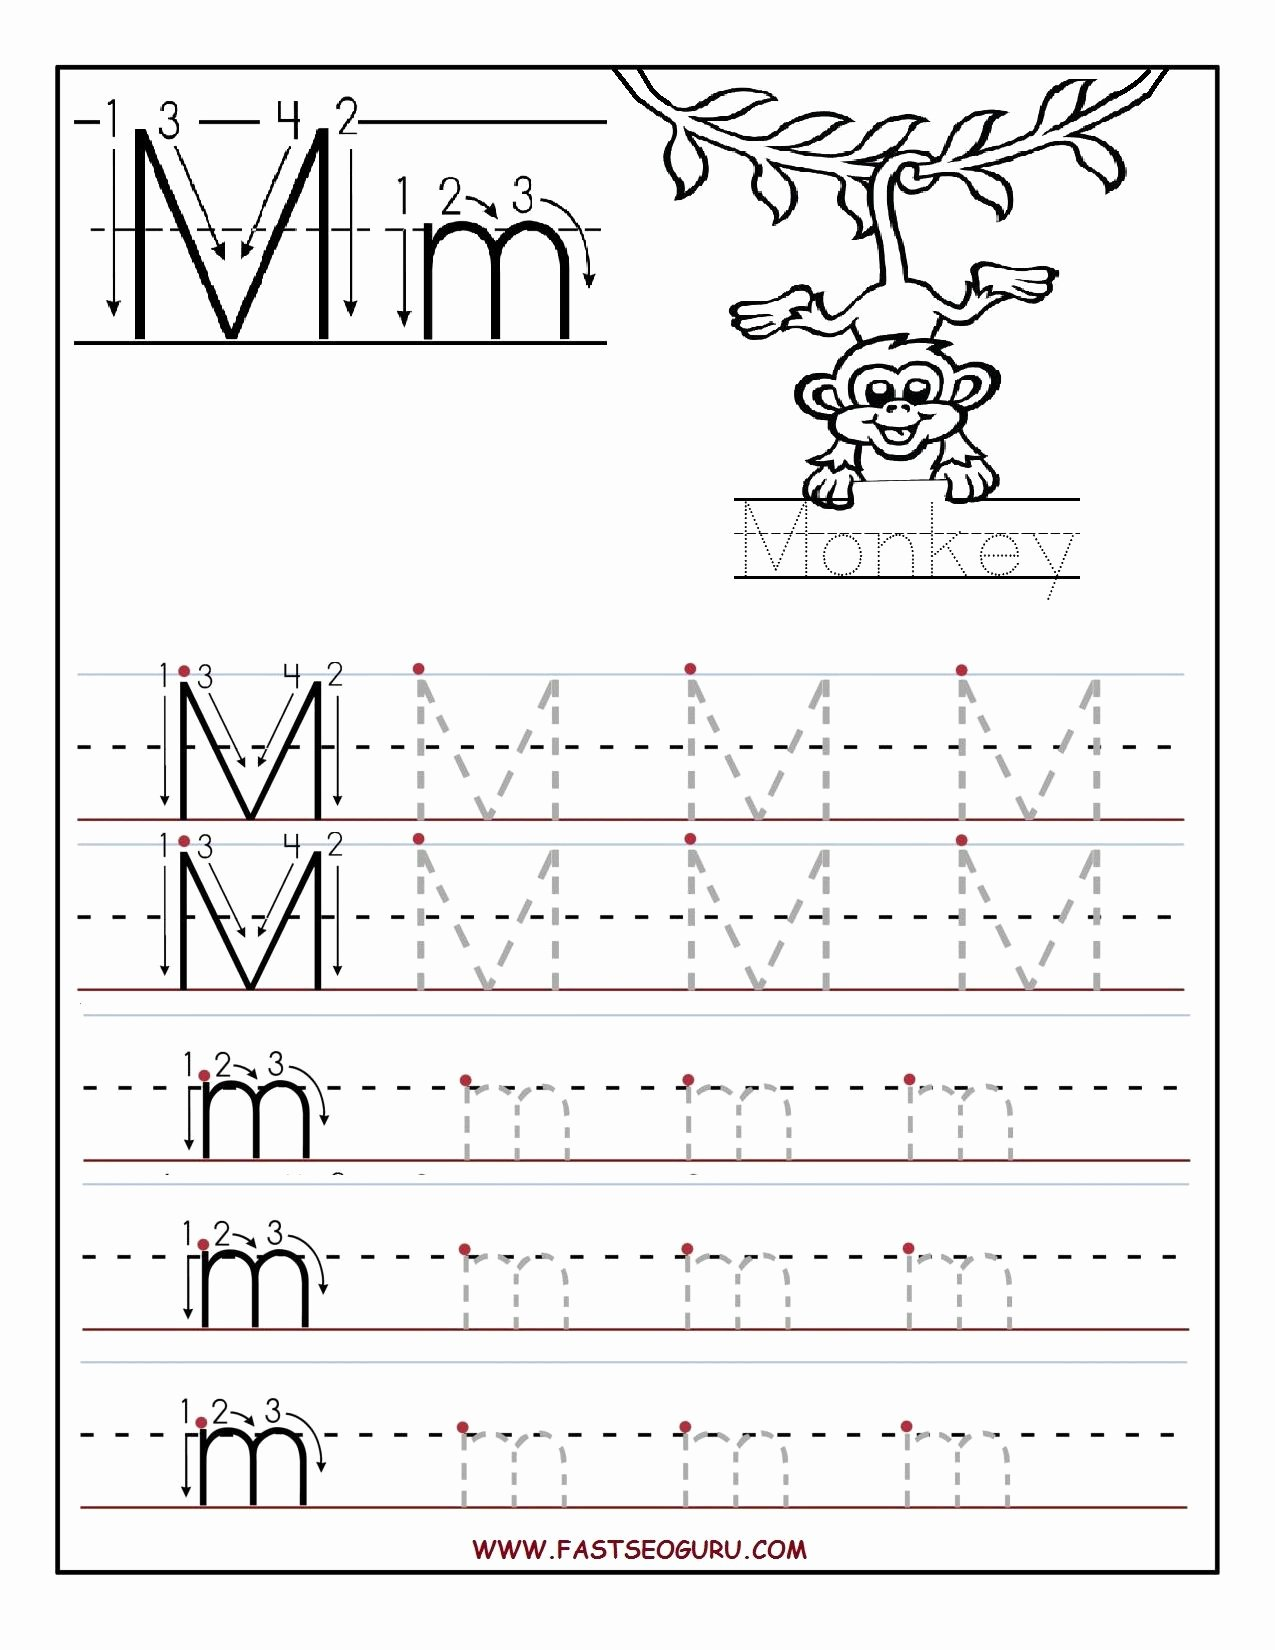 Letter M Worksheets for Preschoolers top Printable Letter M Tracing Worksheets for Preschool